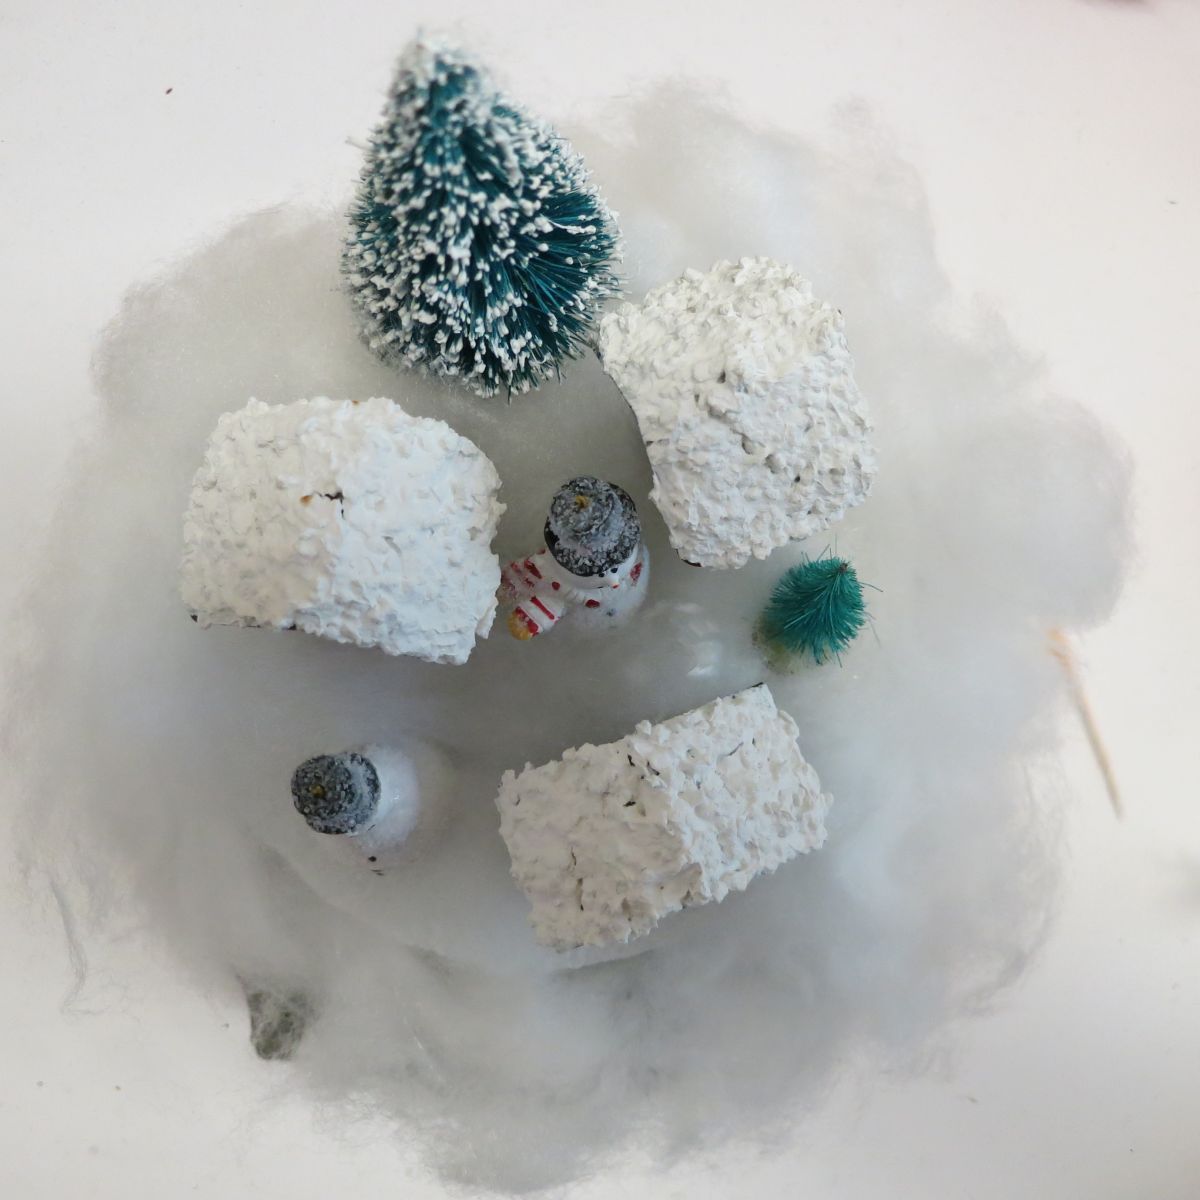 Make Gumball Machine Snow Globe Decor - hot glue trees